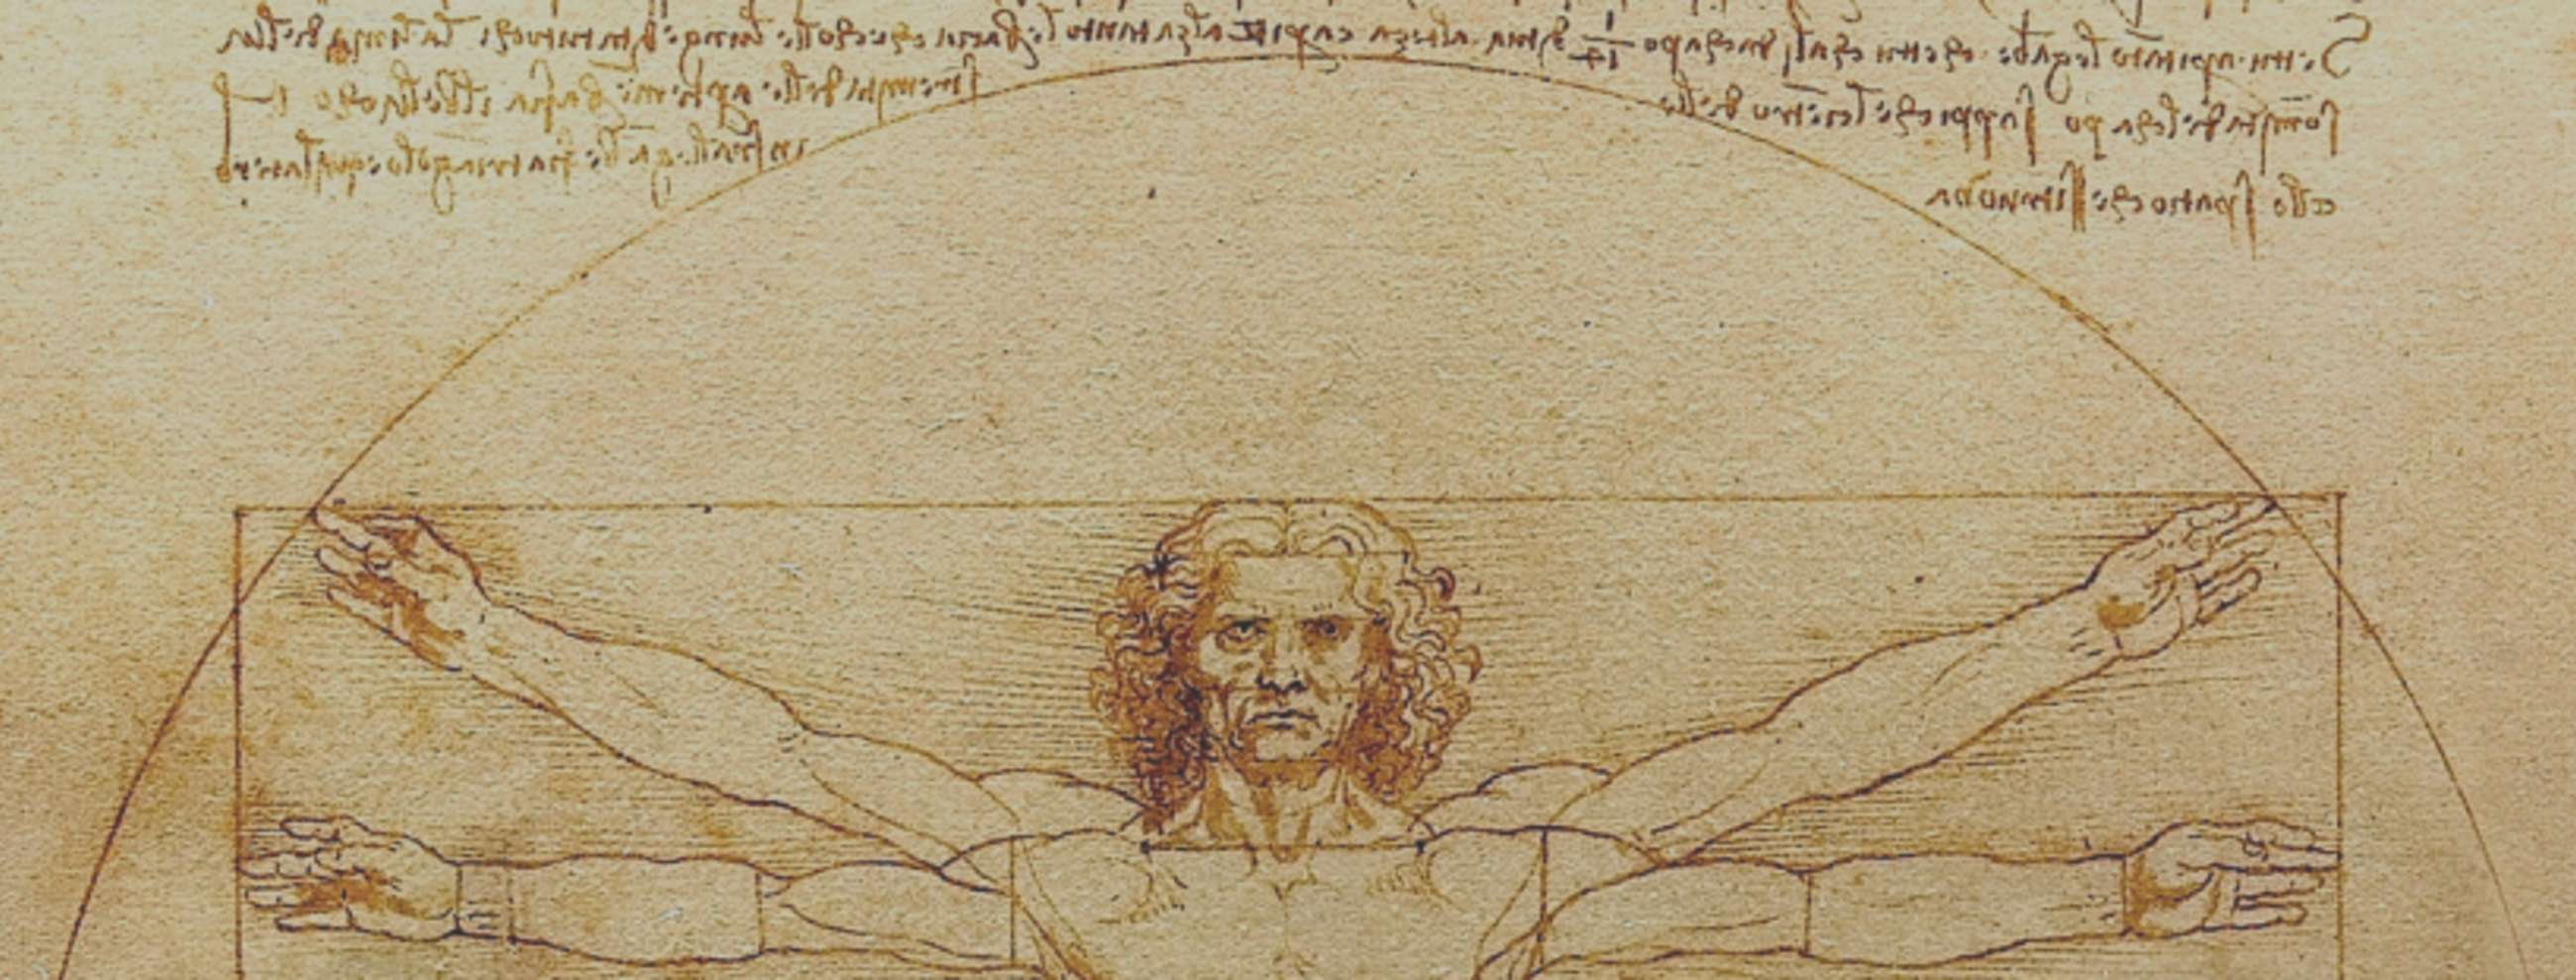 Da Vinci's Vitruvian Man, now on display at the Louvre for a limited time